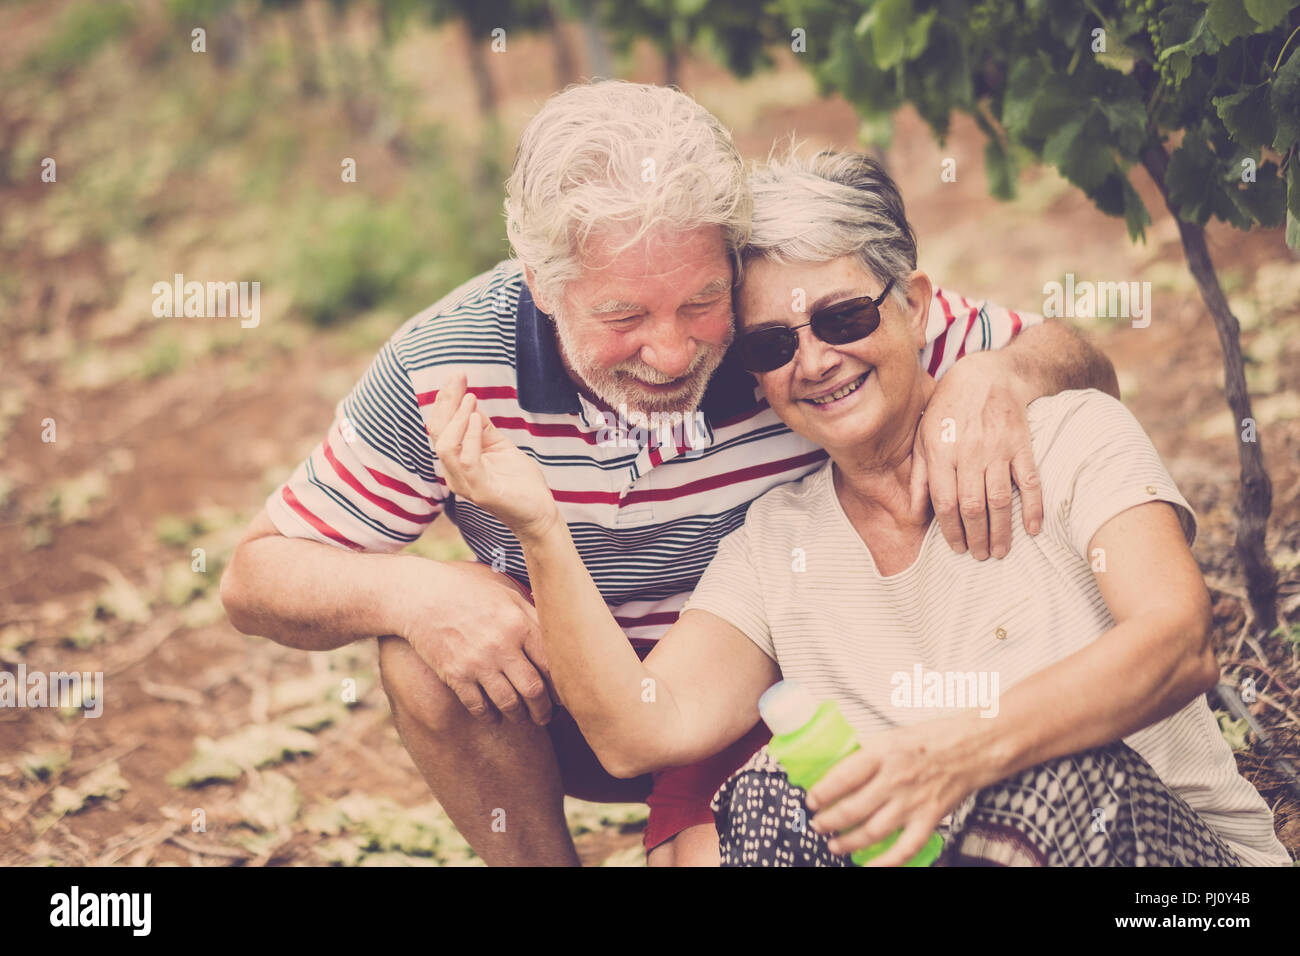 senior adult couple laugh in happines together forever playing with soap bubbles in the country yard outdoor leisure activity. stay young concept and  - Stock Image